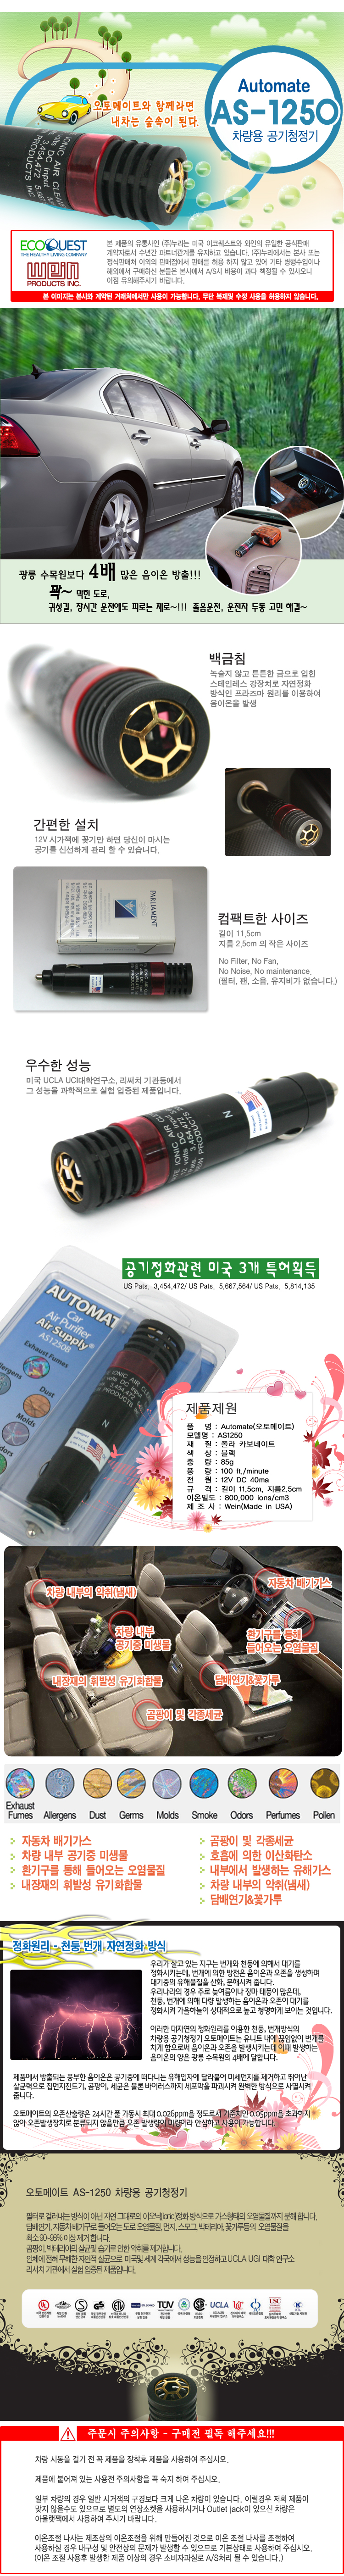 AutoMate AS1250b & Wearable Air Purifier (초미니 공기 청정기)